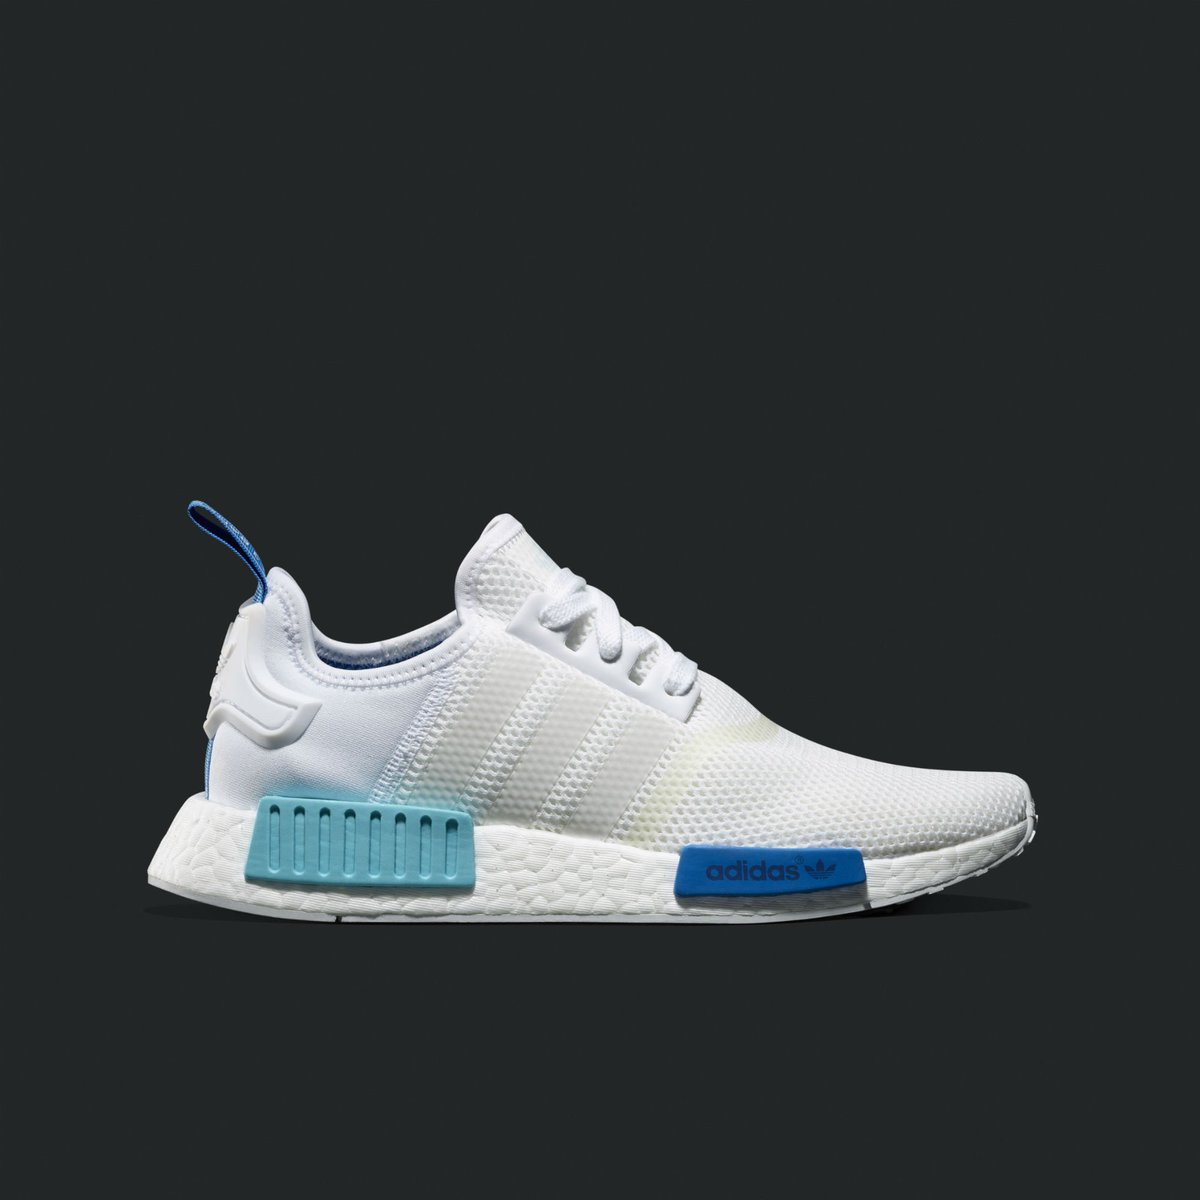 bright rich fresh bold new nmd colorways for women available march 17 be  boundless a3ccc6be06